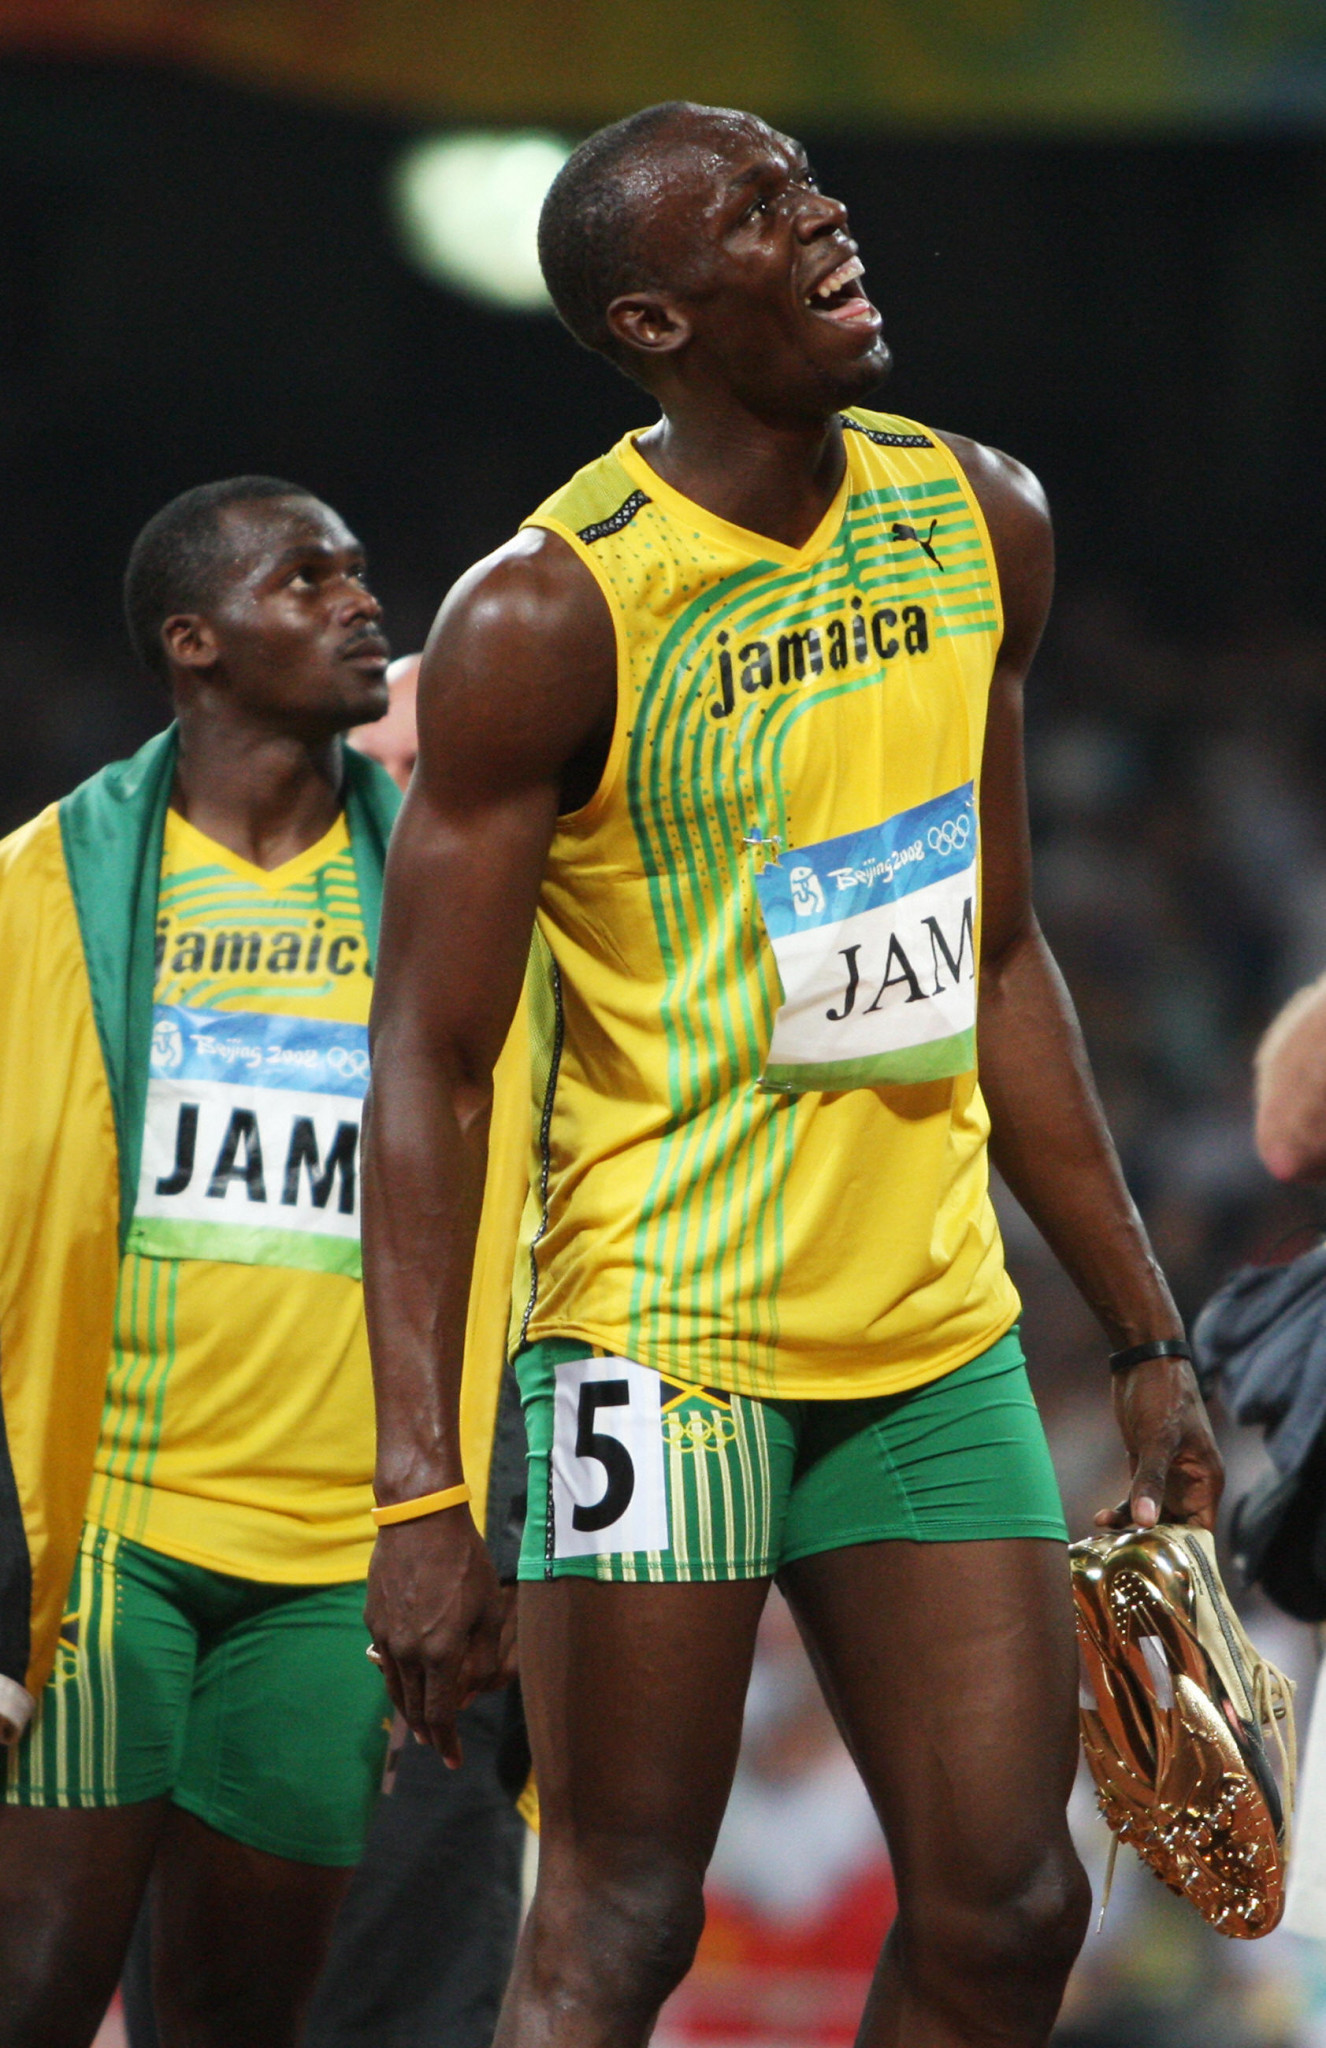 Sporting stars, such as Usain Bolt at Beijing 2008, usually steal back the limelight from political matters at the Olympic Games ©Getty Images